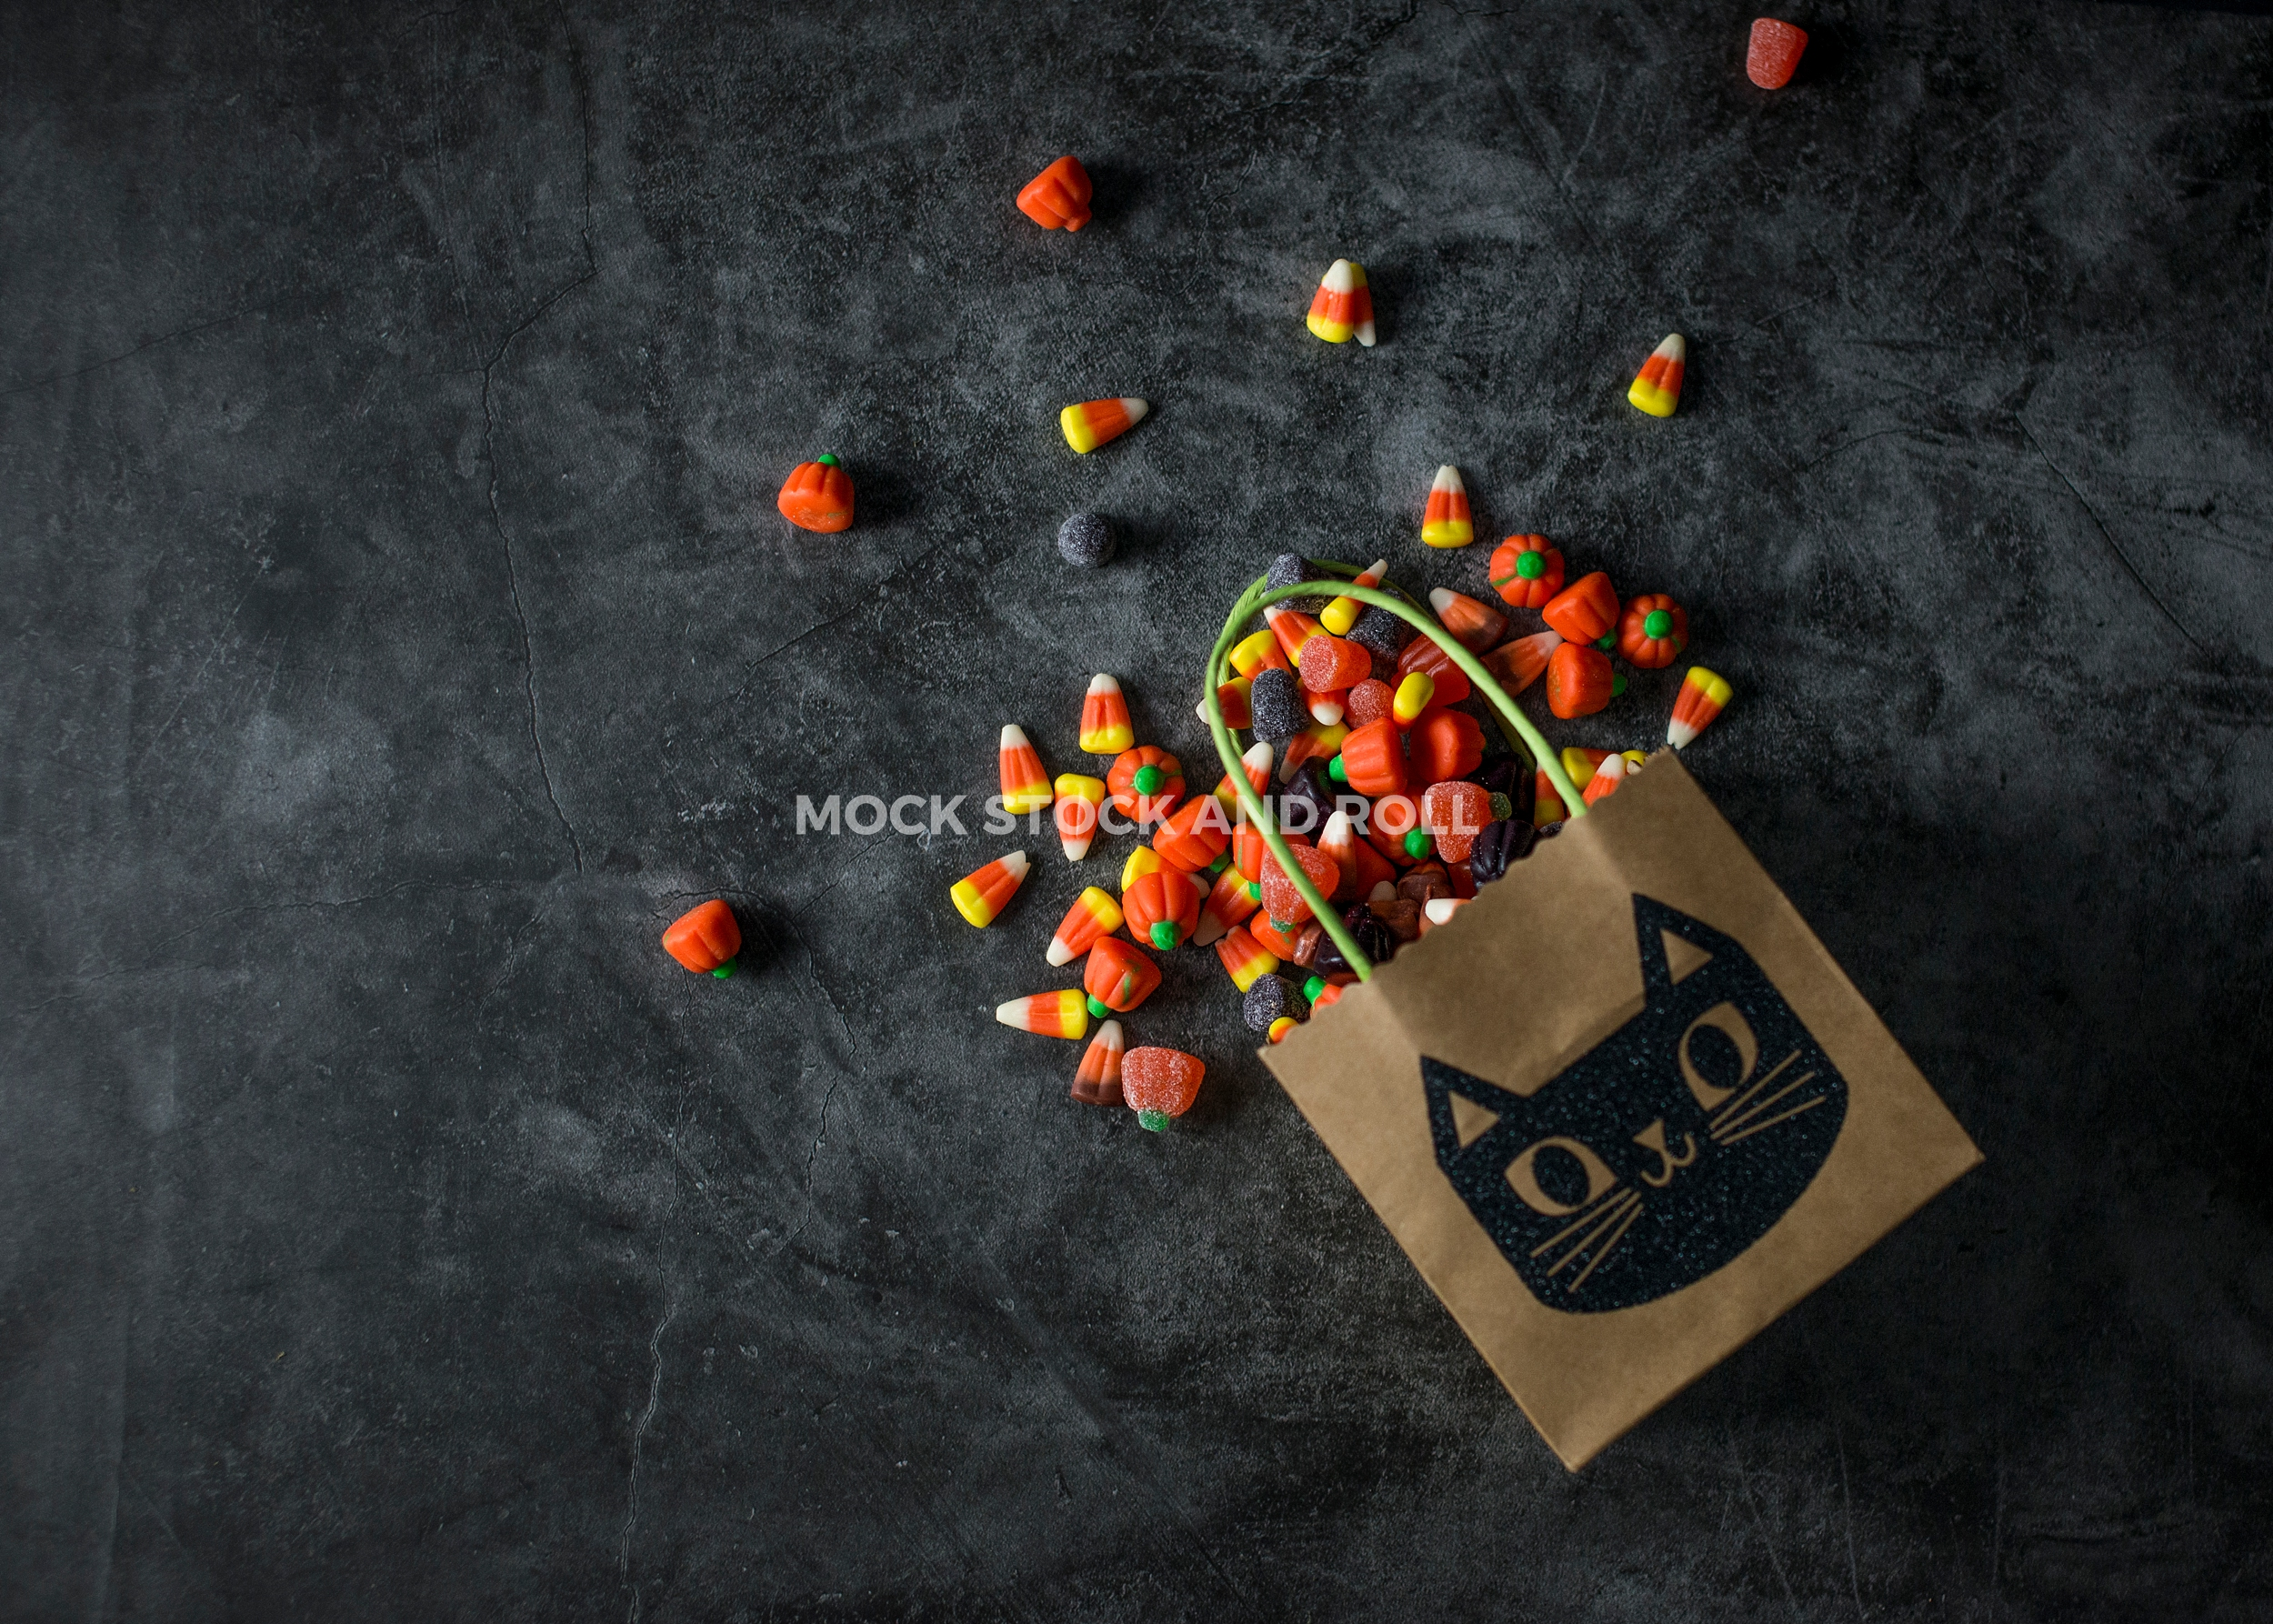 Dark and moody Halloween styled stock photos with candy corn from Mock Stock and Roll Photography.